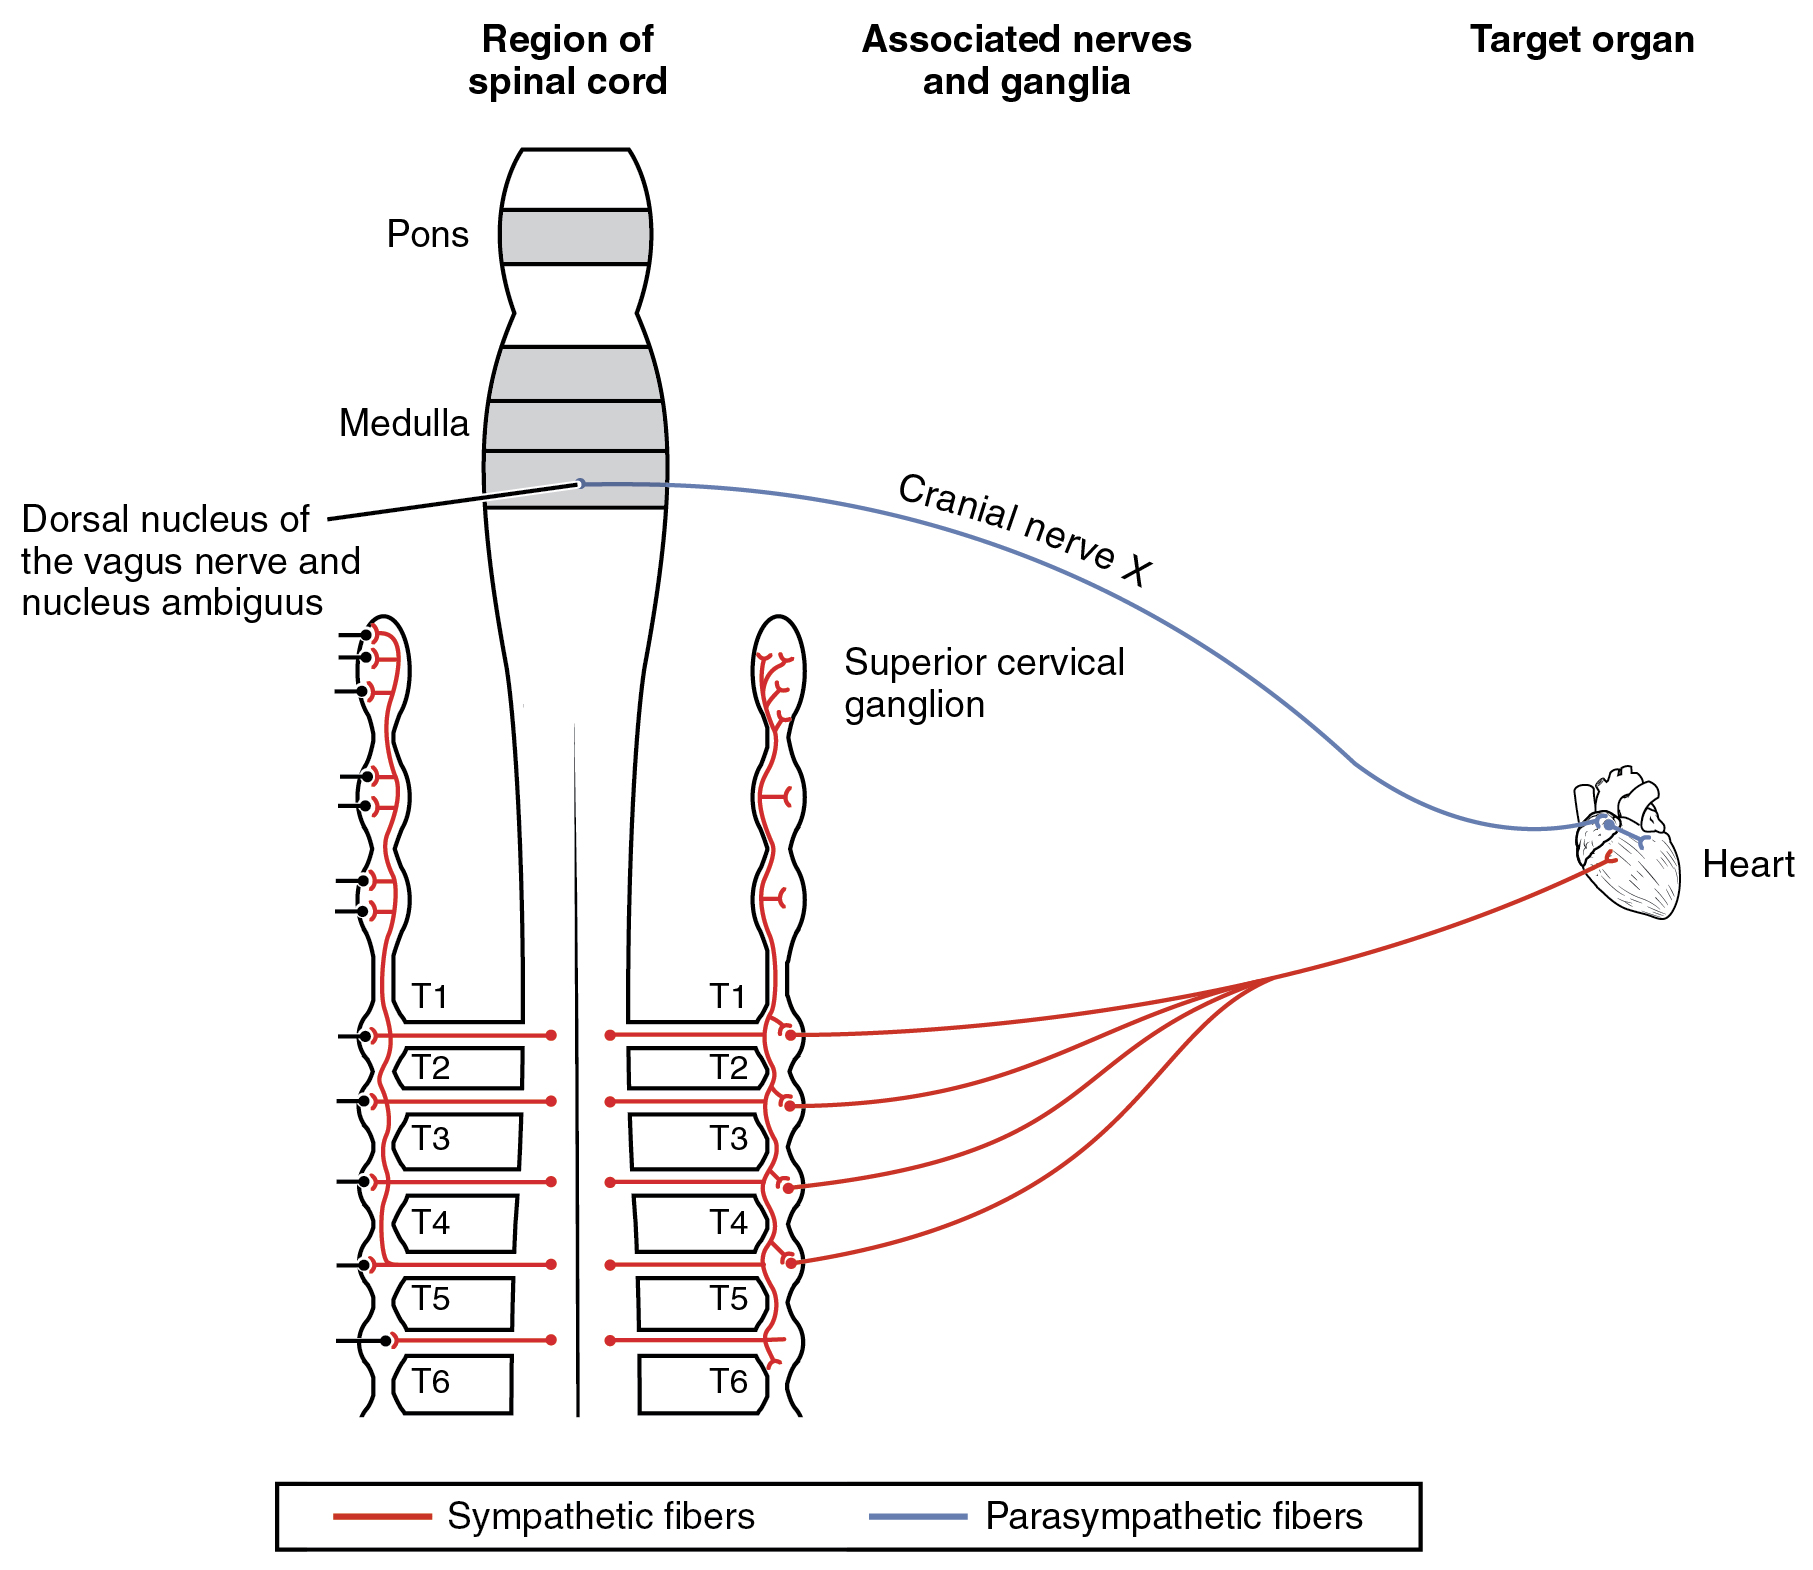 This figure shows the spinal cord and the different nerves that connect to the heart, which is the target organ shown on the right.